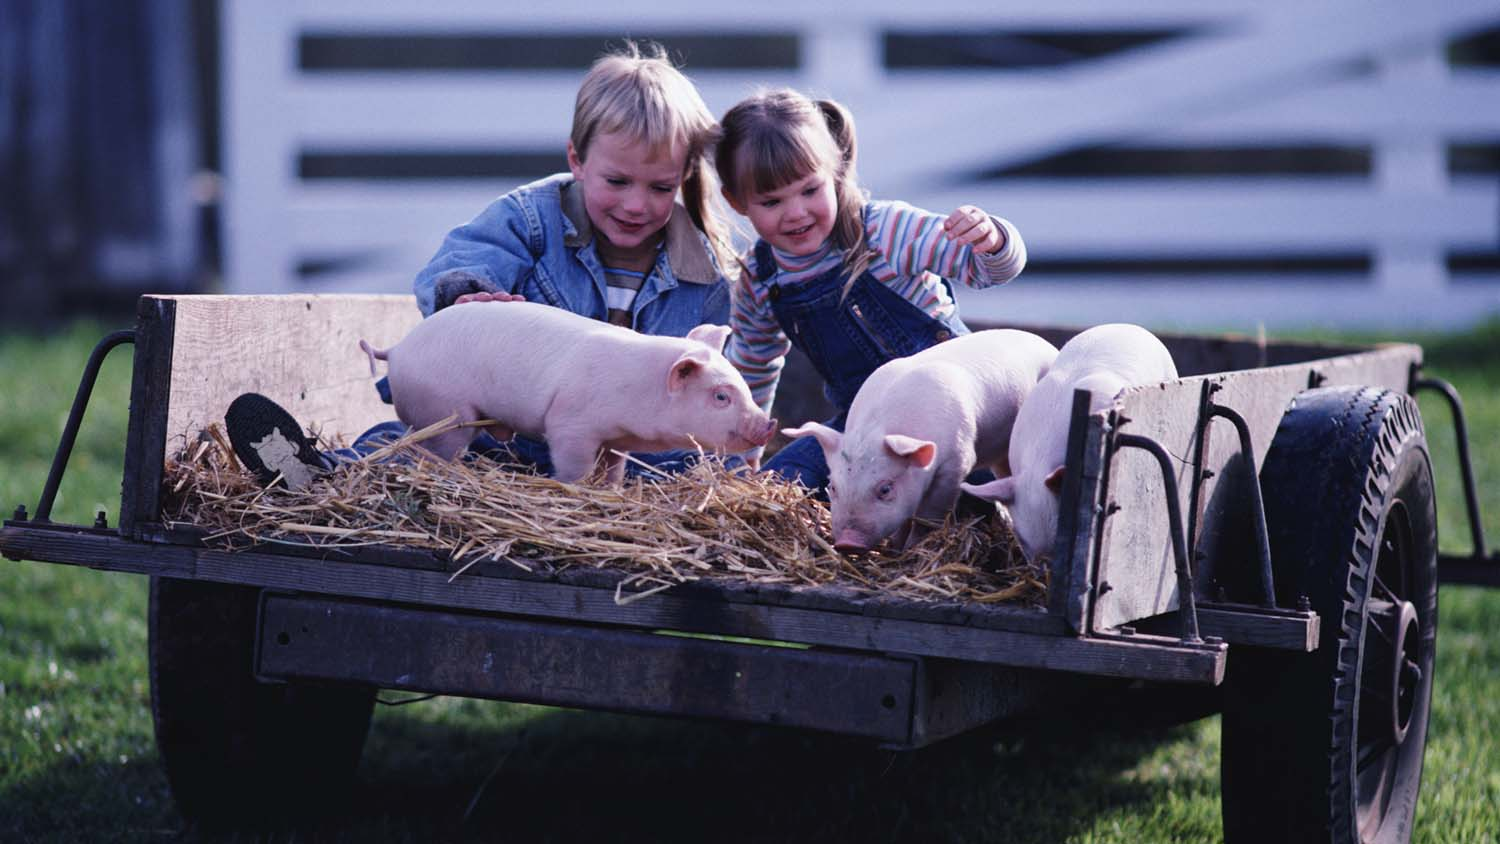 One sixth of 5-7 year-olds thought bacon was the produce of cows, sheep or chickens.